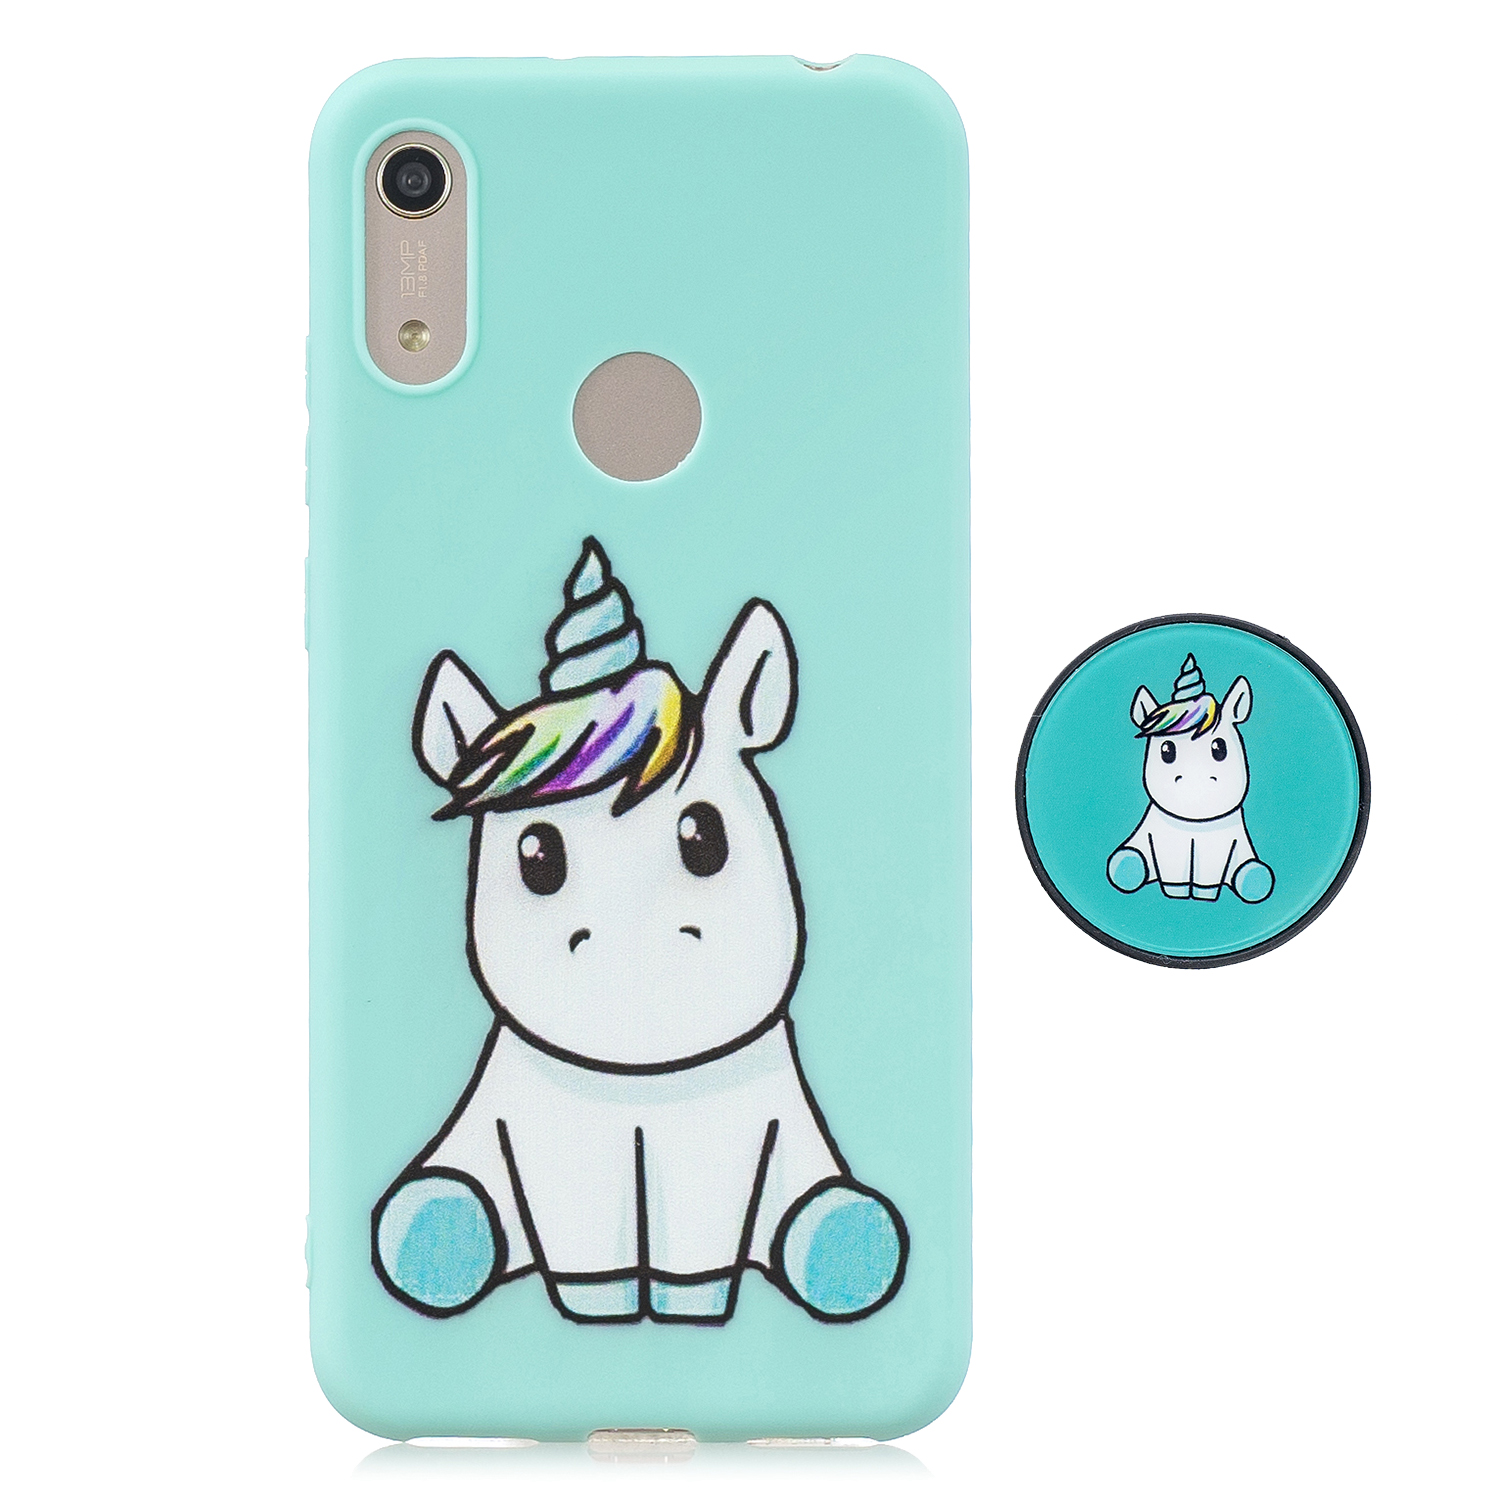 For HUAWEI Y6 2019 Flexible Stand Holder Case Soft TPU Full Cover Case Phone Cover Cute Phone Case 5